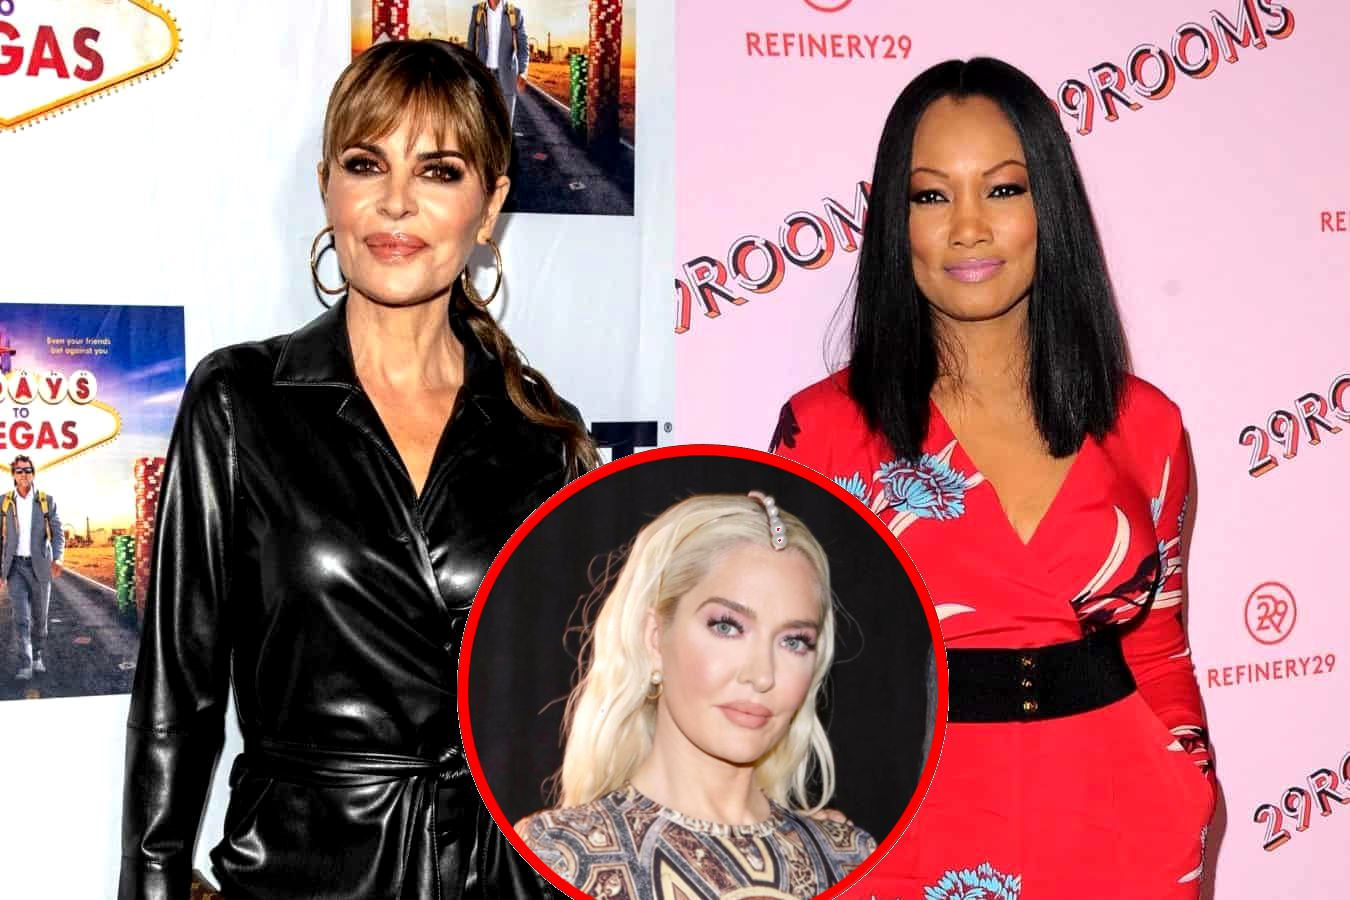 """REPORT: Lisa Rinna and Garcelle Beauvais 'Fought Hard' at RHOBH Reunion Taping as Lisa Defended Erika, Plus Andy Cohen """"Went Hard"""" on Erika"""